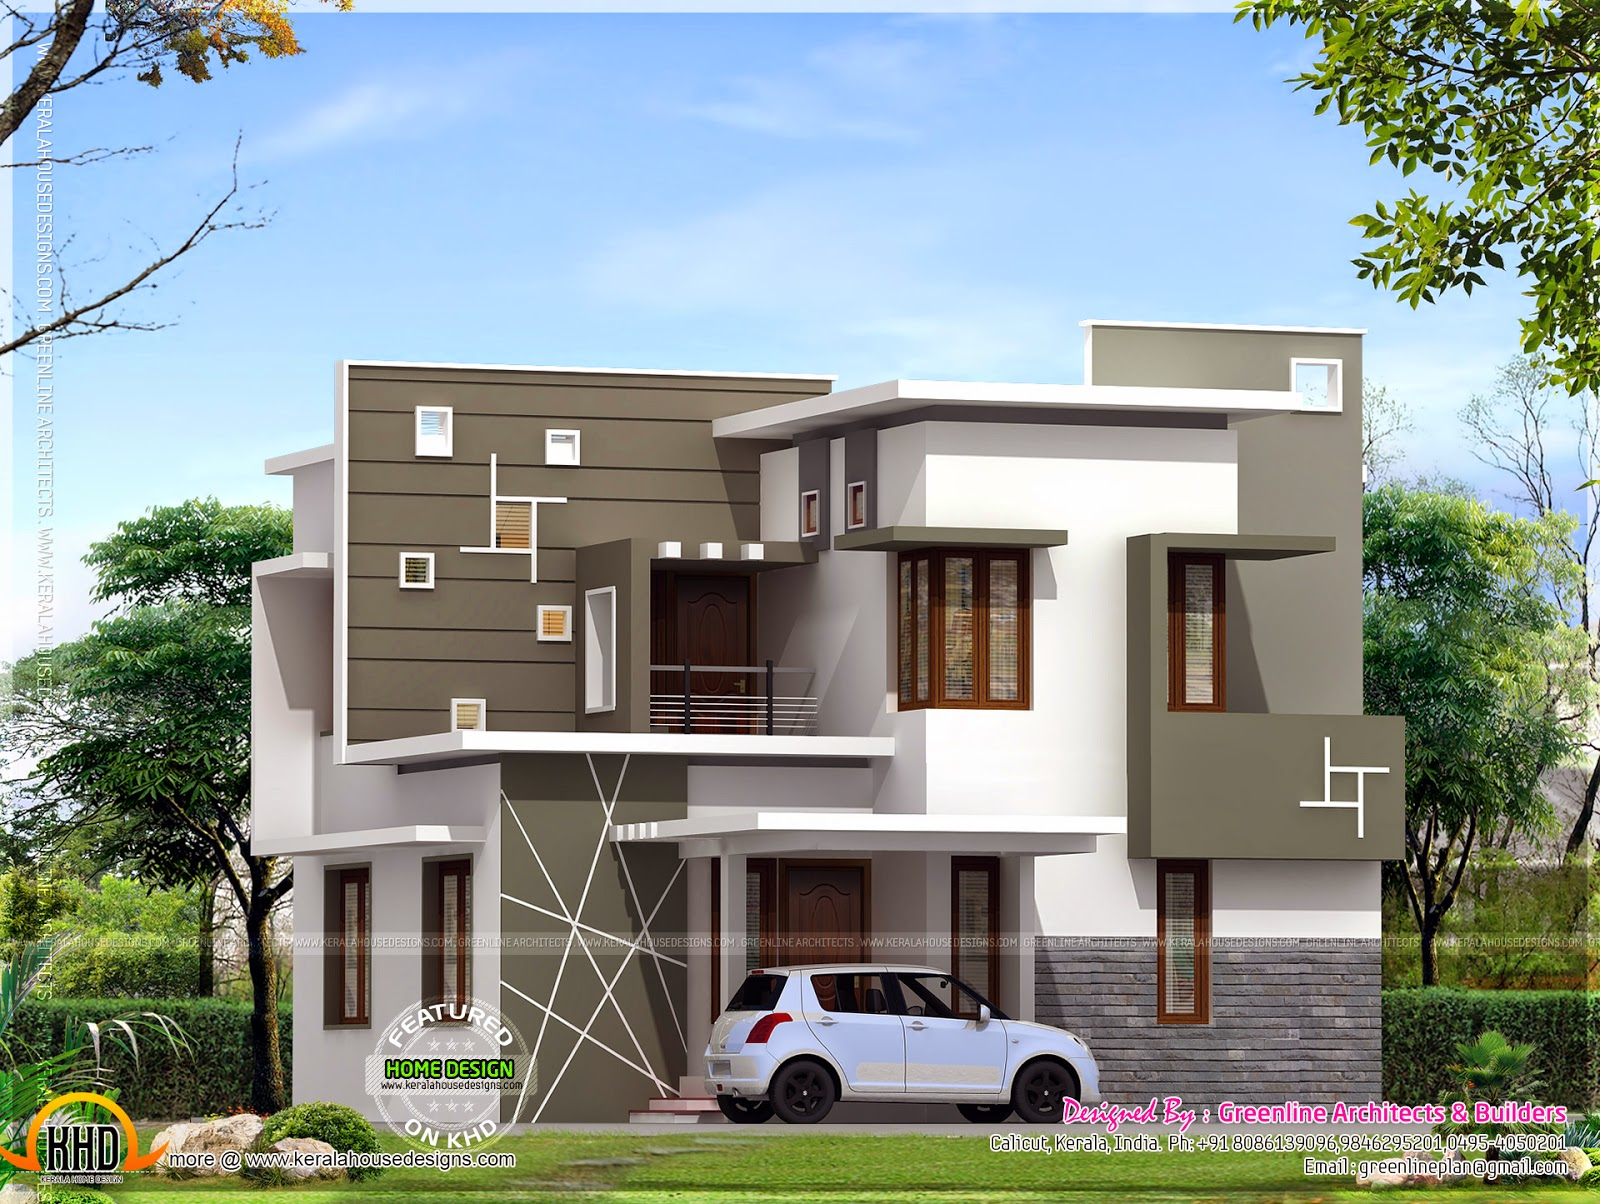 Budget modern house kerala home design and floor plans for 800 sq ft house plans kerala style